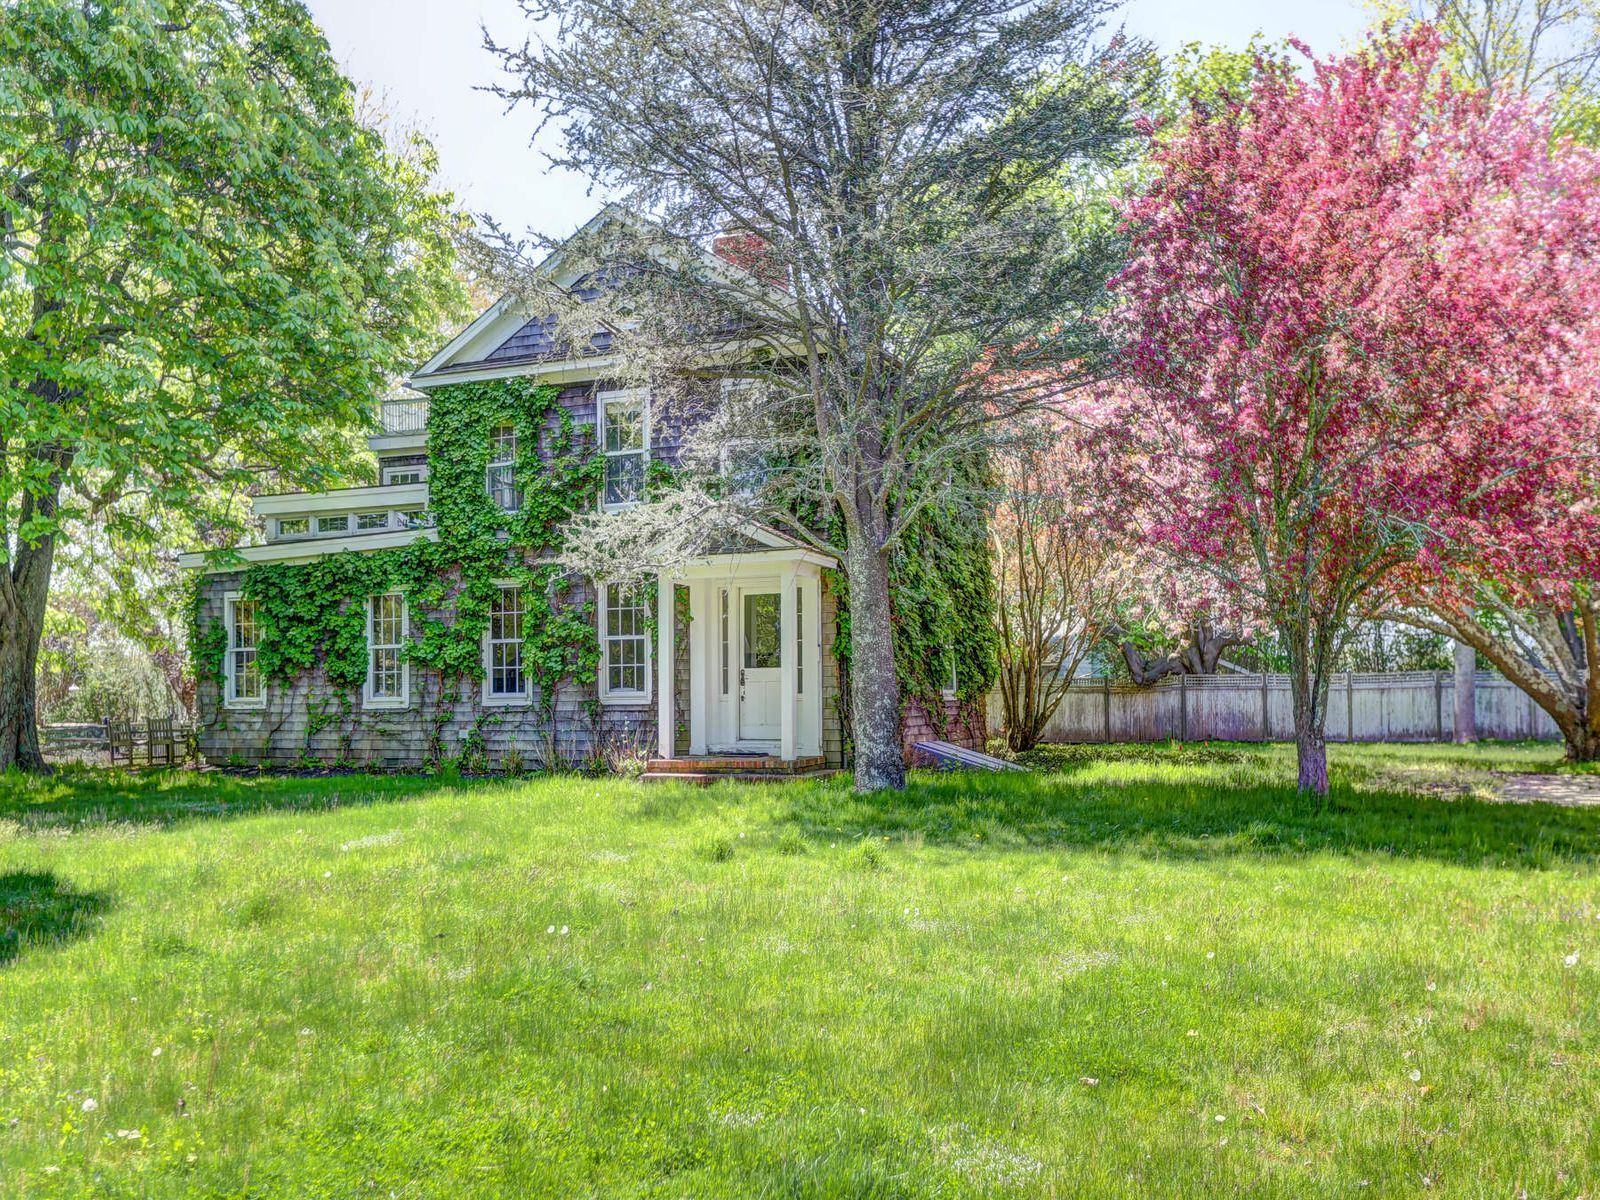 Old World Charm, Desirable Location, Bridgehampton NY Single Family Home - Hamptons Real Estate